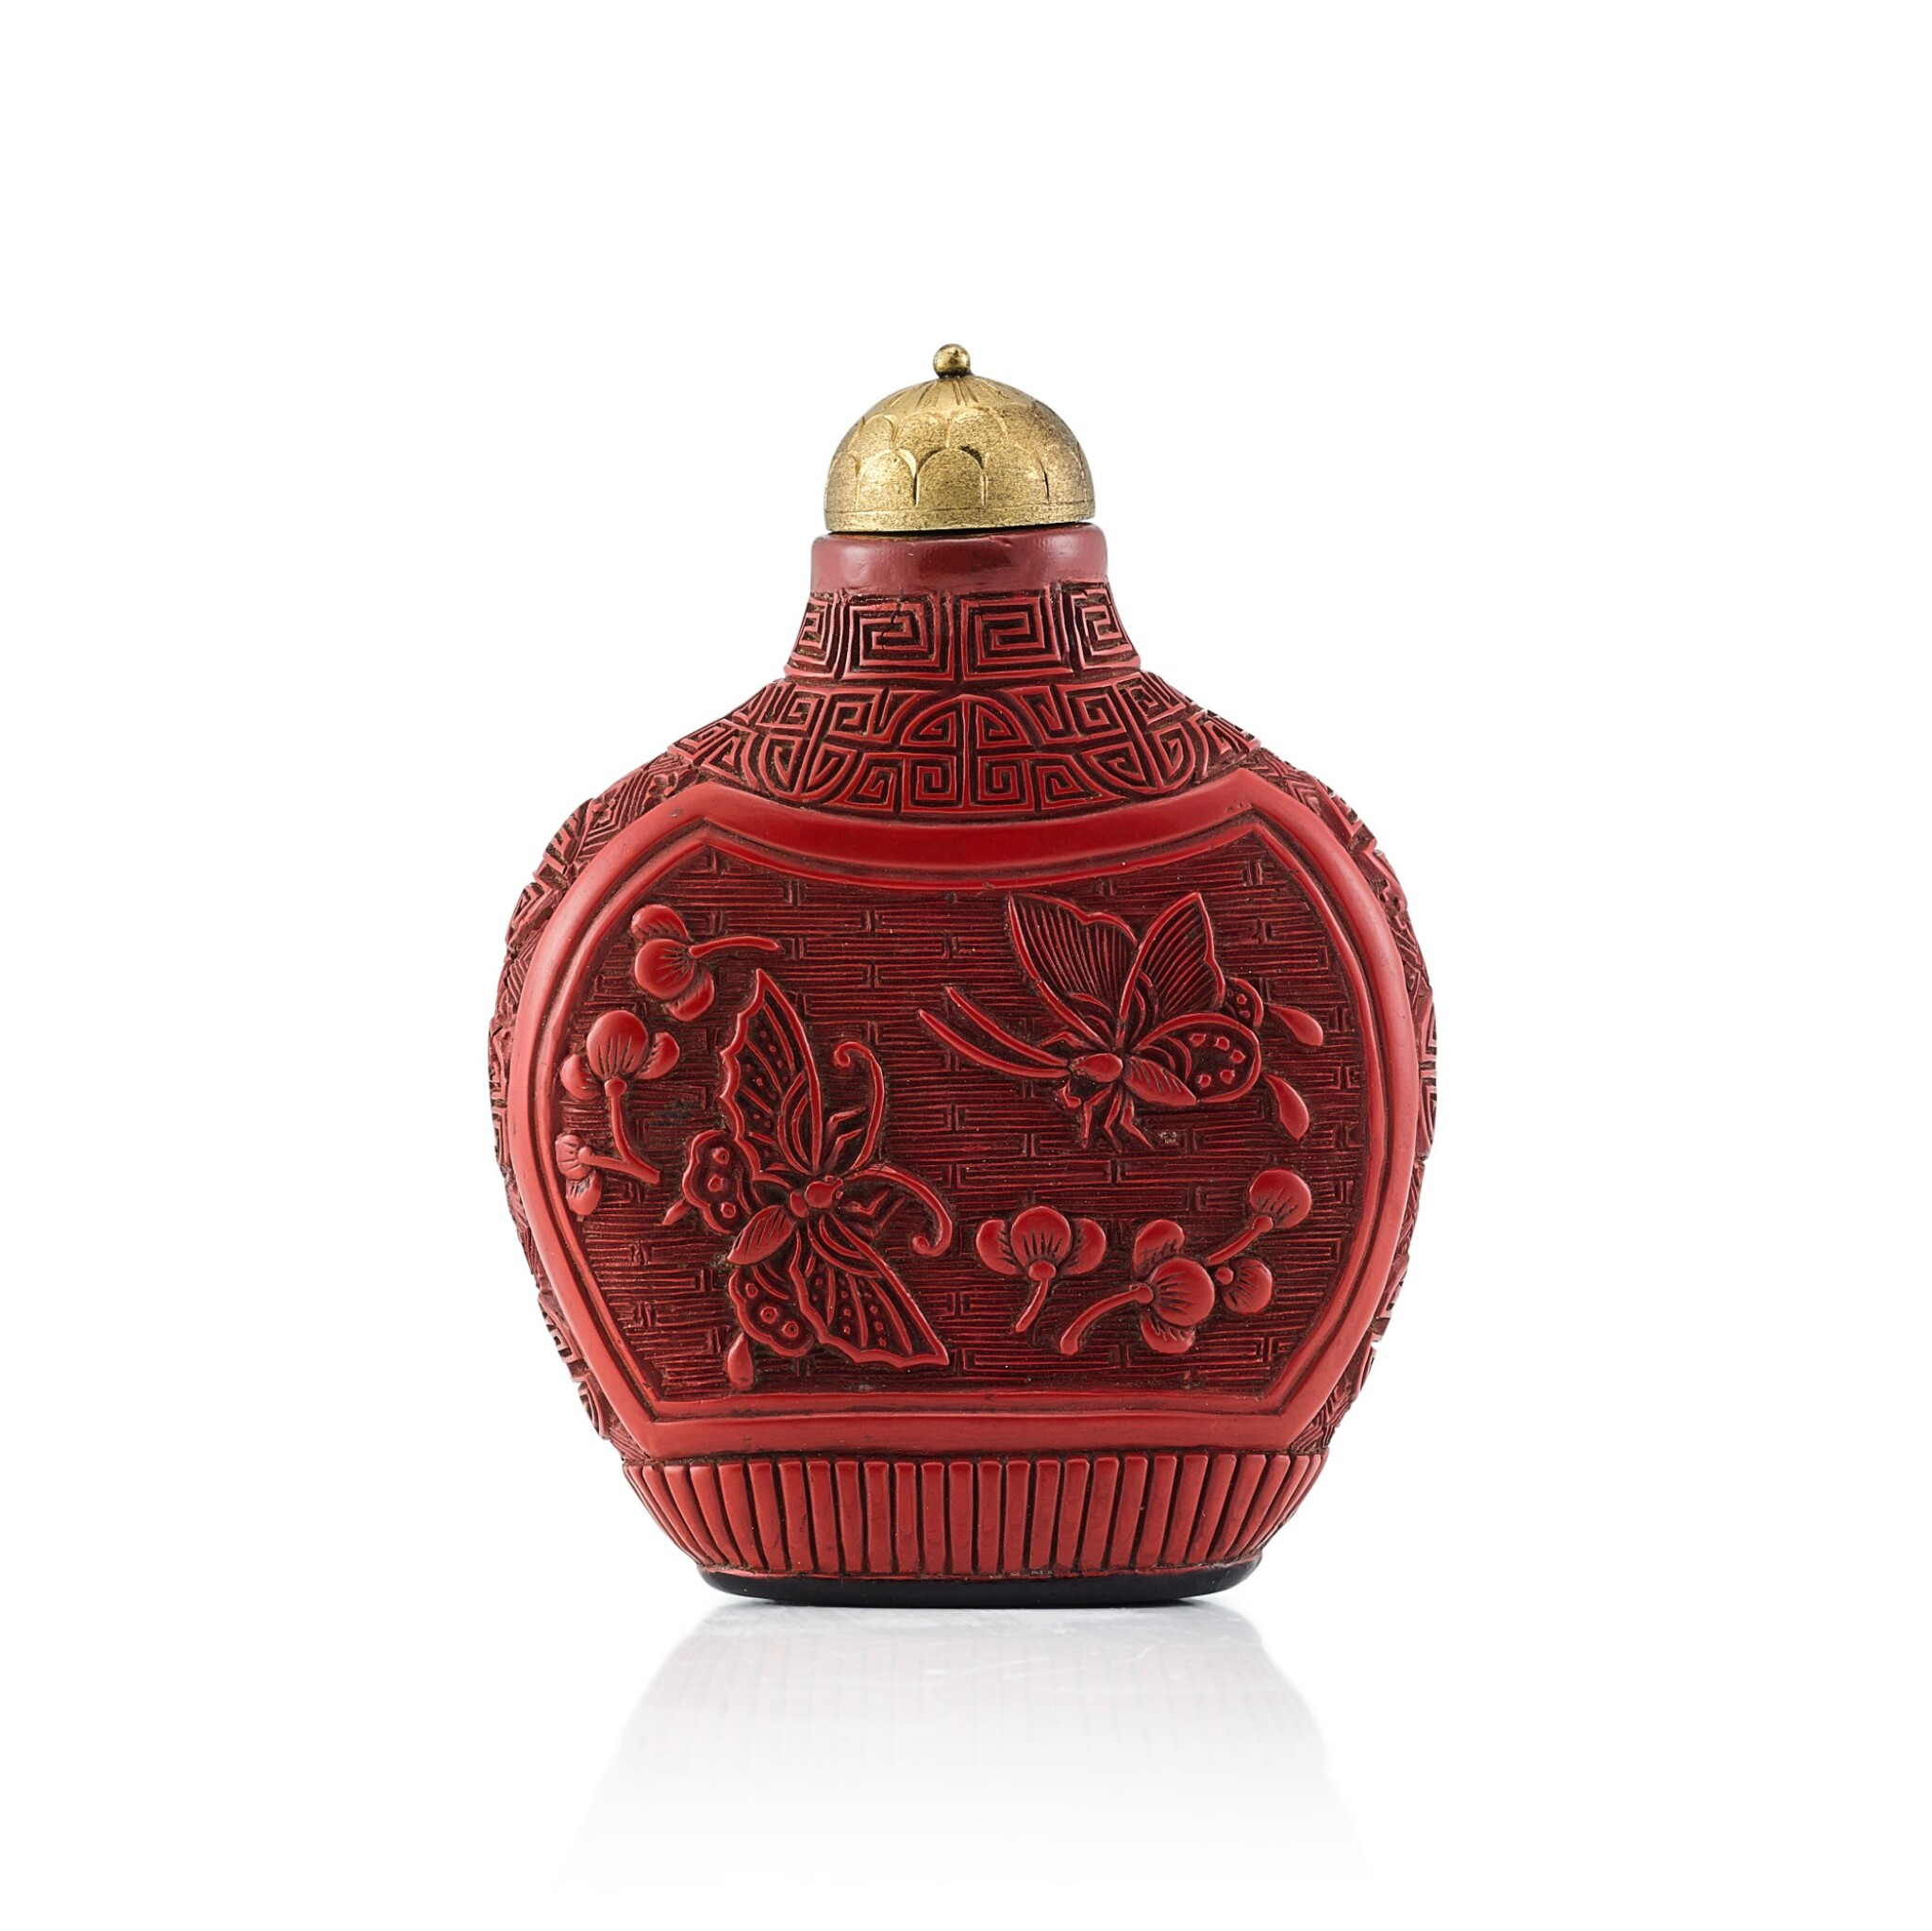 View 1 of Lot 3007. A Carved Cinnabar Lacquer 'Flowers and Butterflies' Snuff Bottle Qing Dynasty, 18th - 19th Century | 清十八至十九世紀 剔紅蝶戀花鼻煙壺.